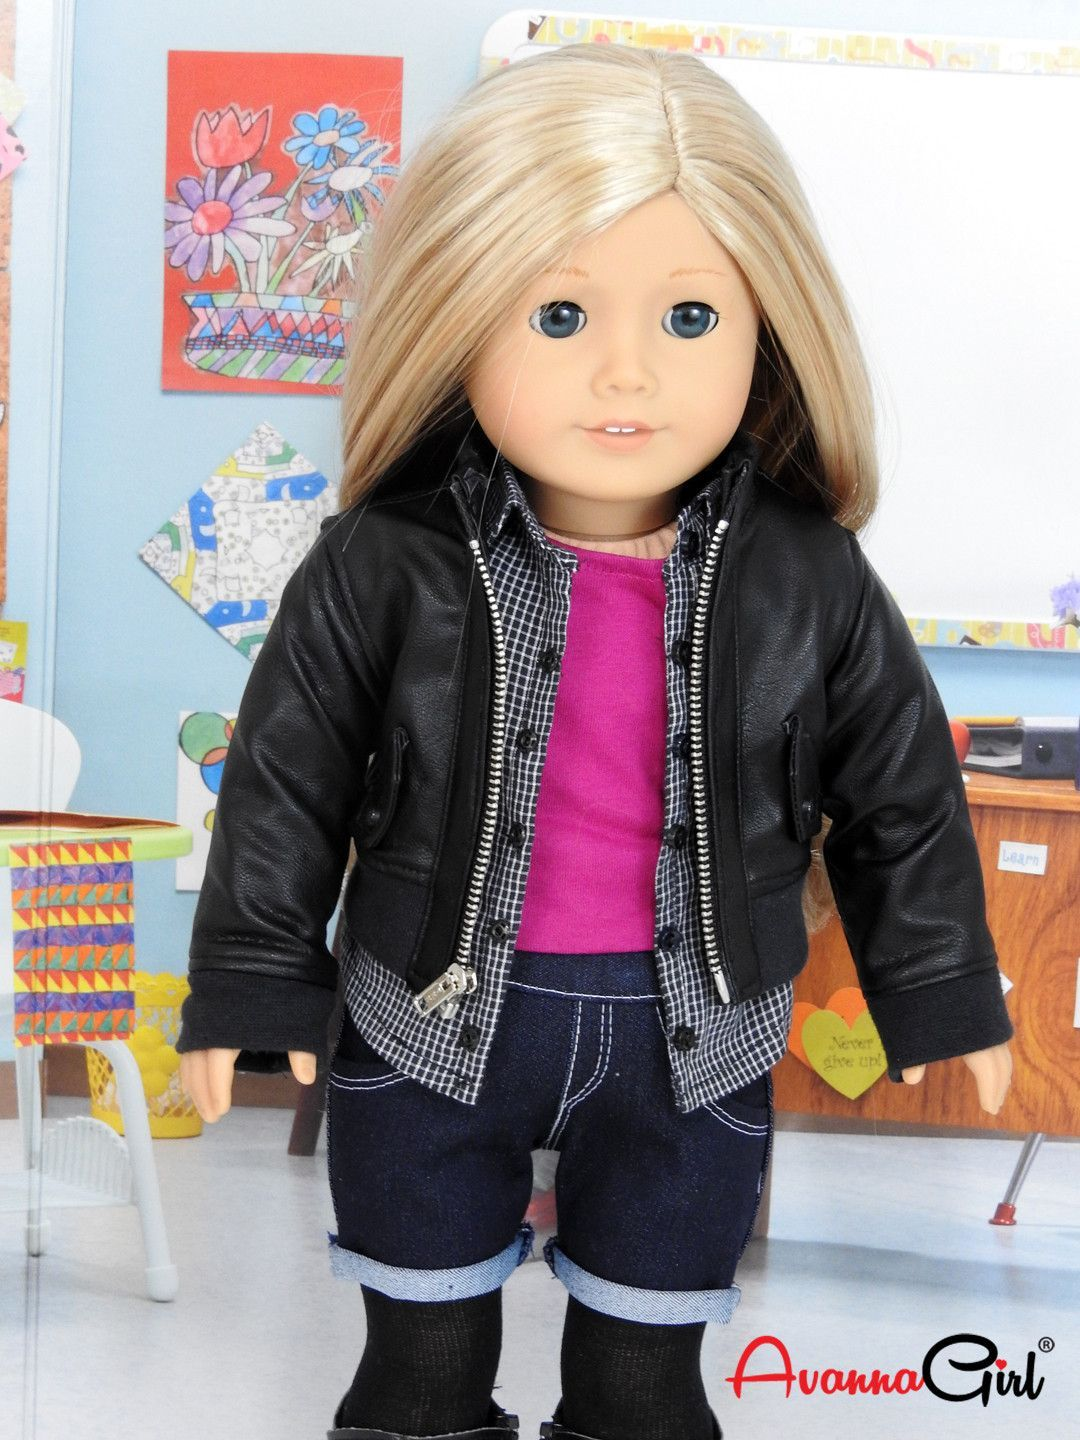 Back to School Hoody Outfit 18 in doll clothes girl doll clothes 18 in dolls